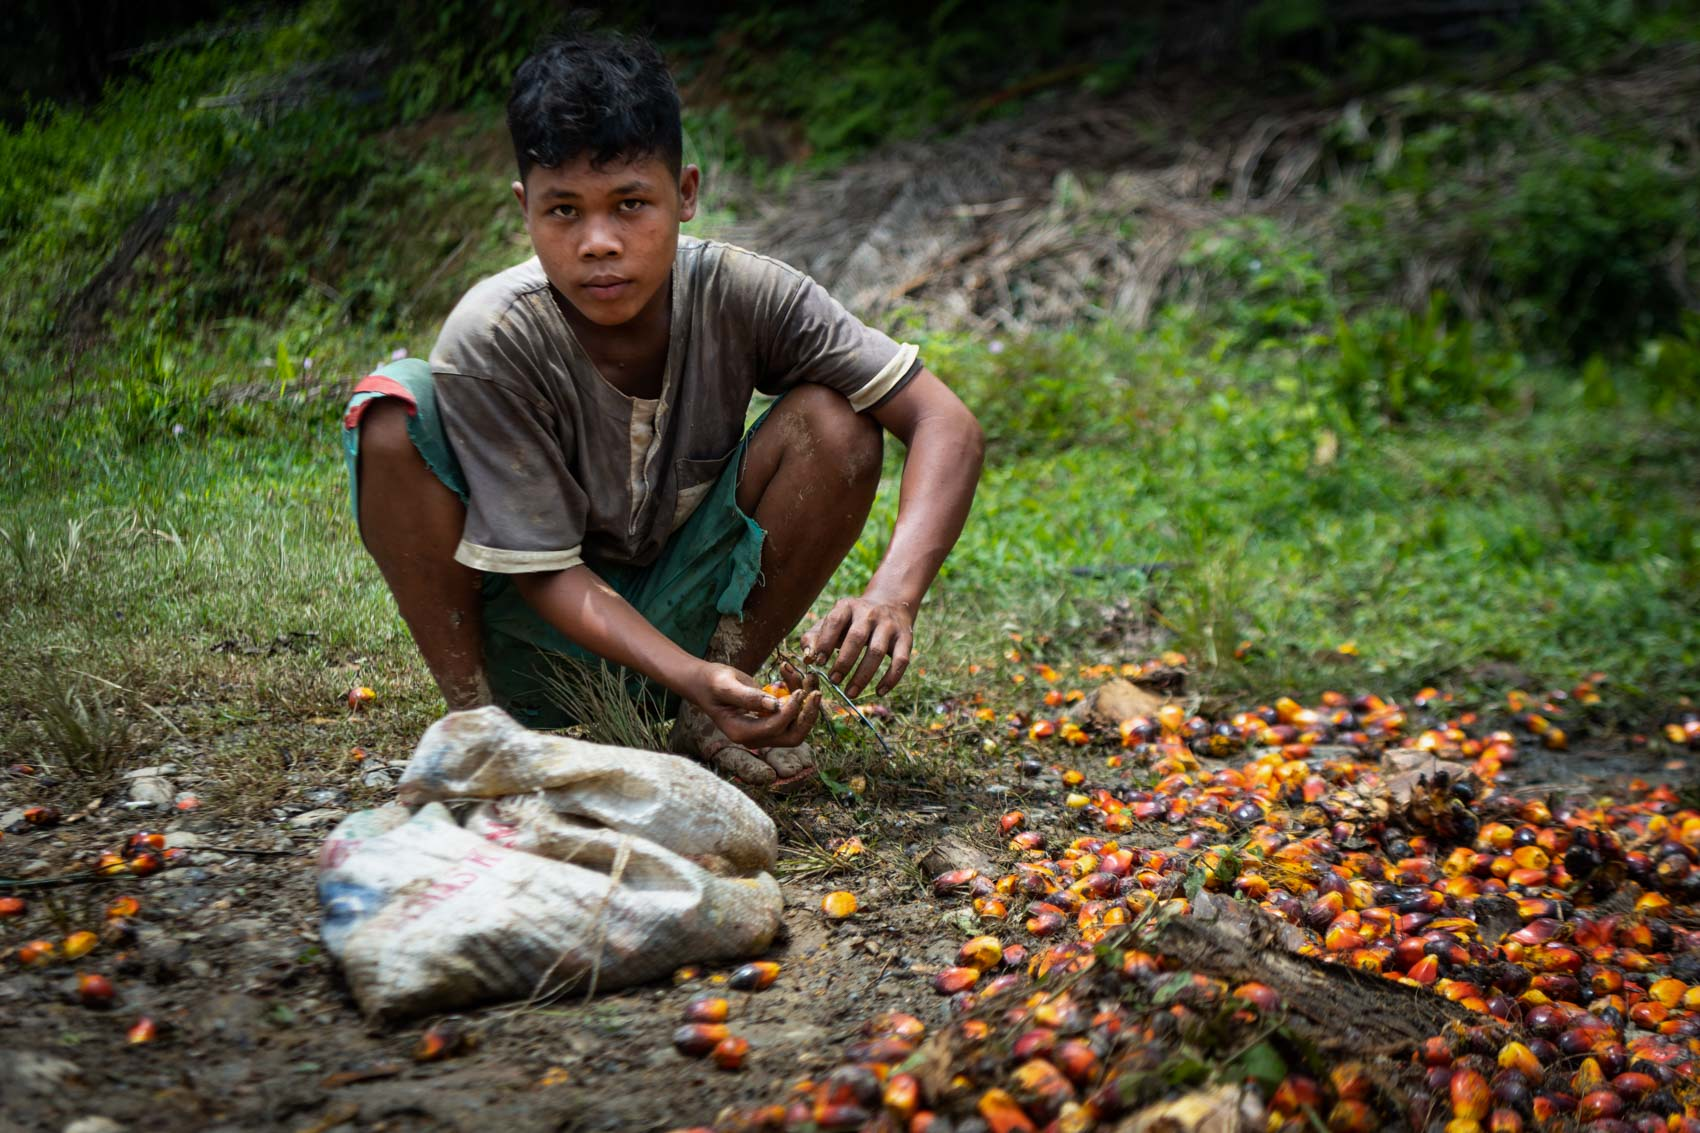 A boy collecting palm oil fruit on the ground in Northern Sumatra, Indonesia